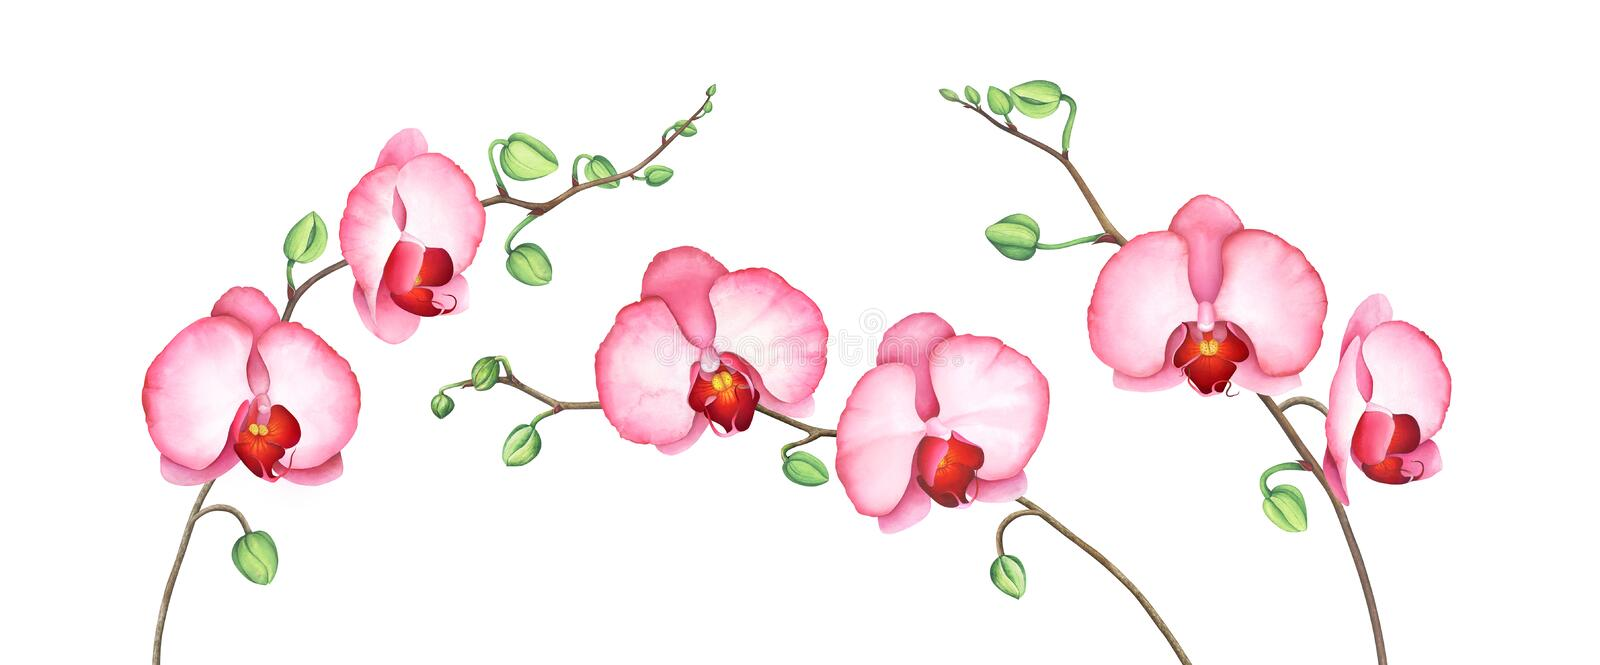 Set of pink orchid branches isolated on white background. Watercolor illustration. stock illustration